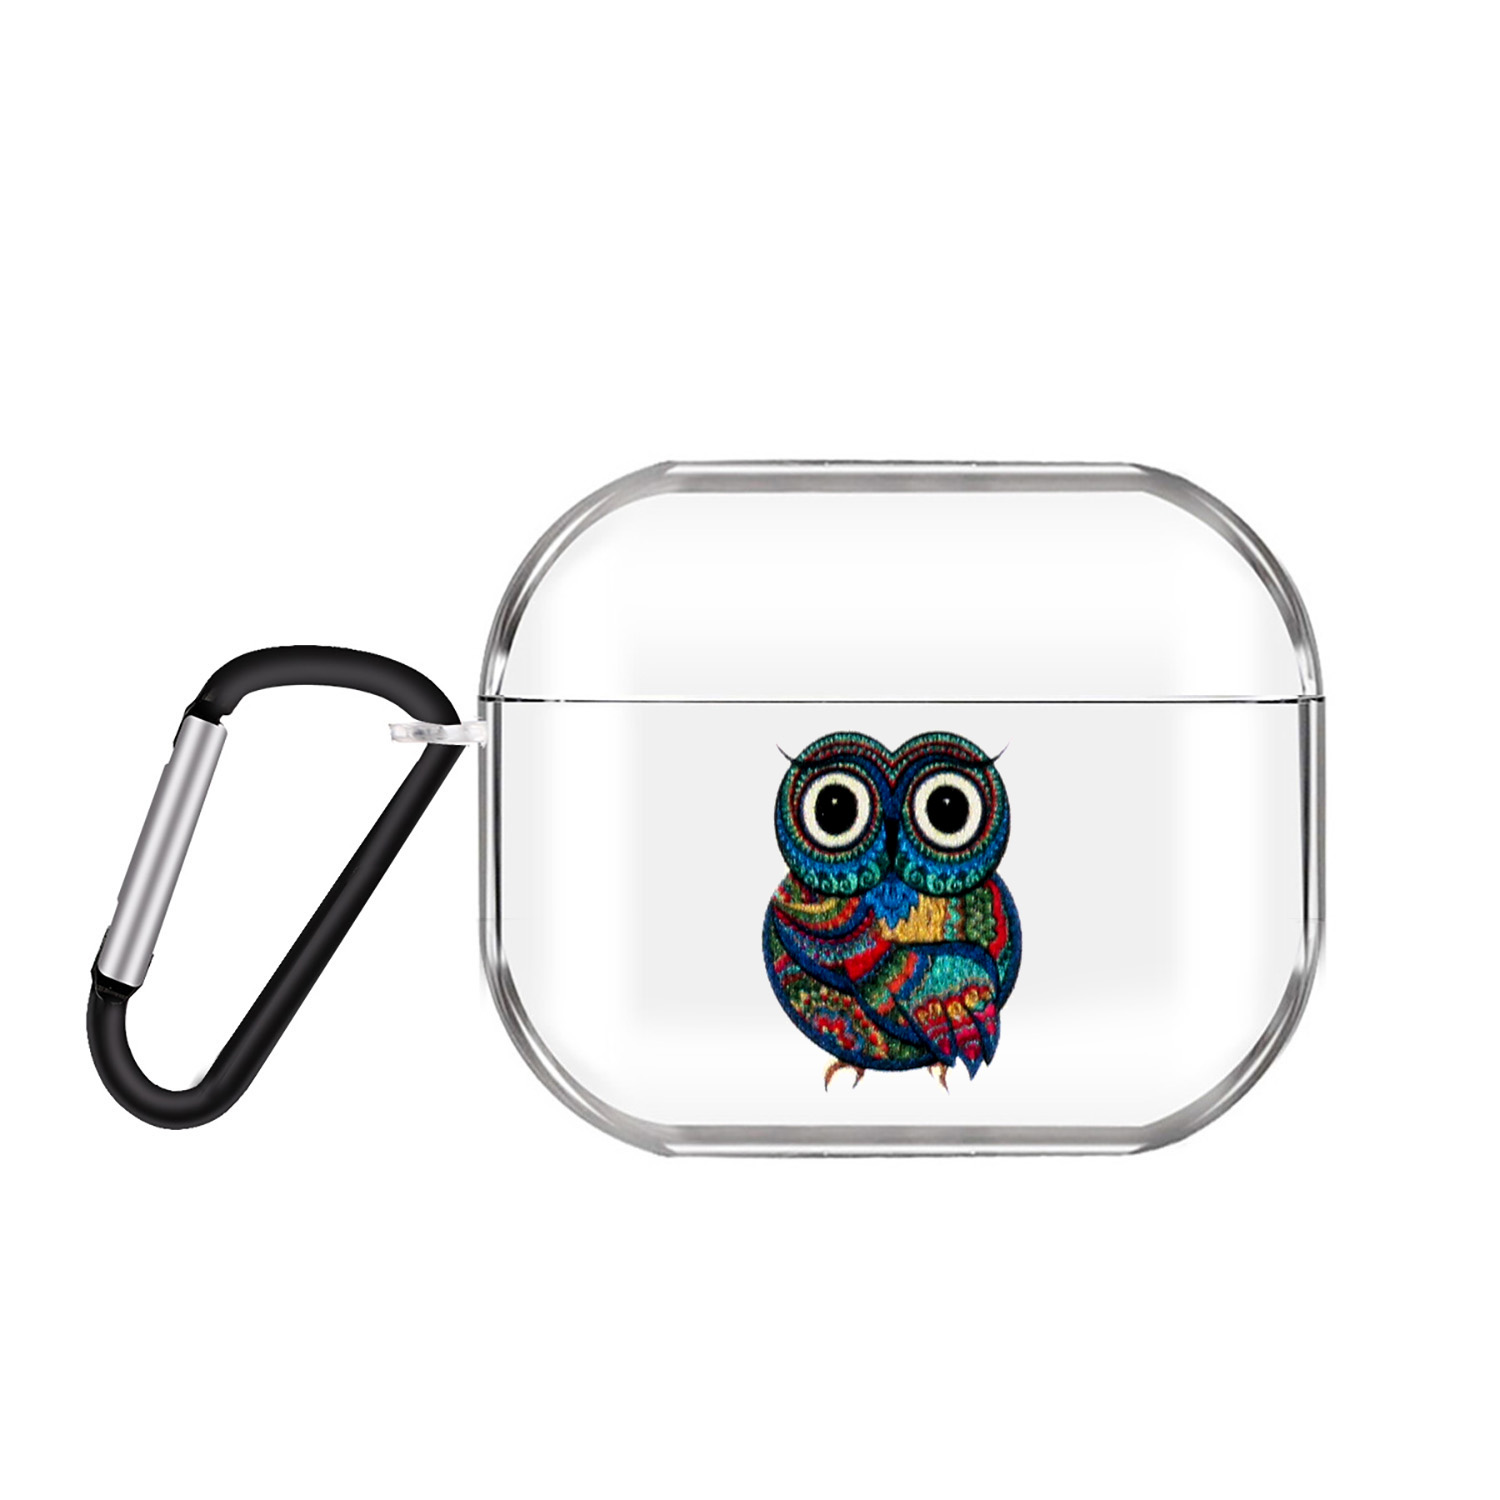 For AirPods Pro Headphones Case Transparent Earphone Shell with Metal Hook Overall Protection Cover 9 Owl